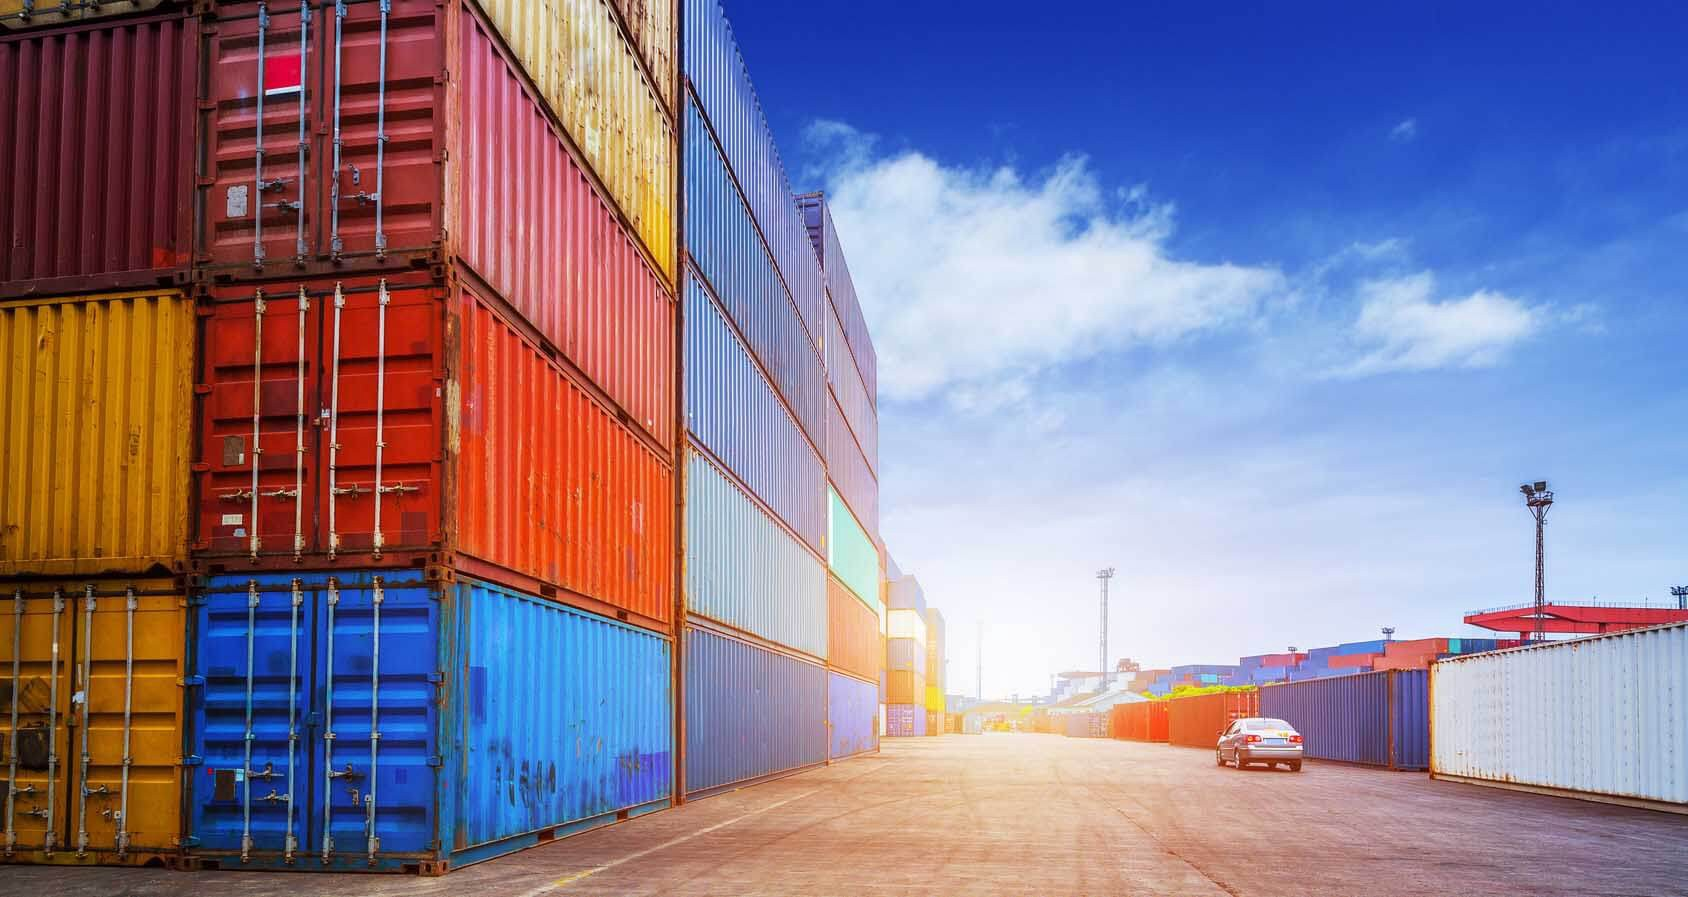 You should know the skills of container loading